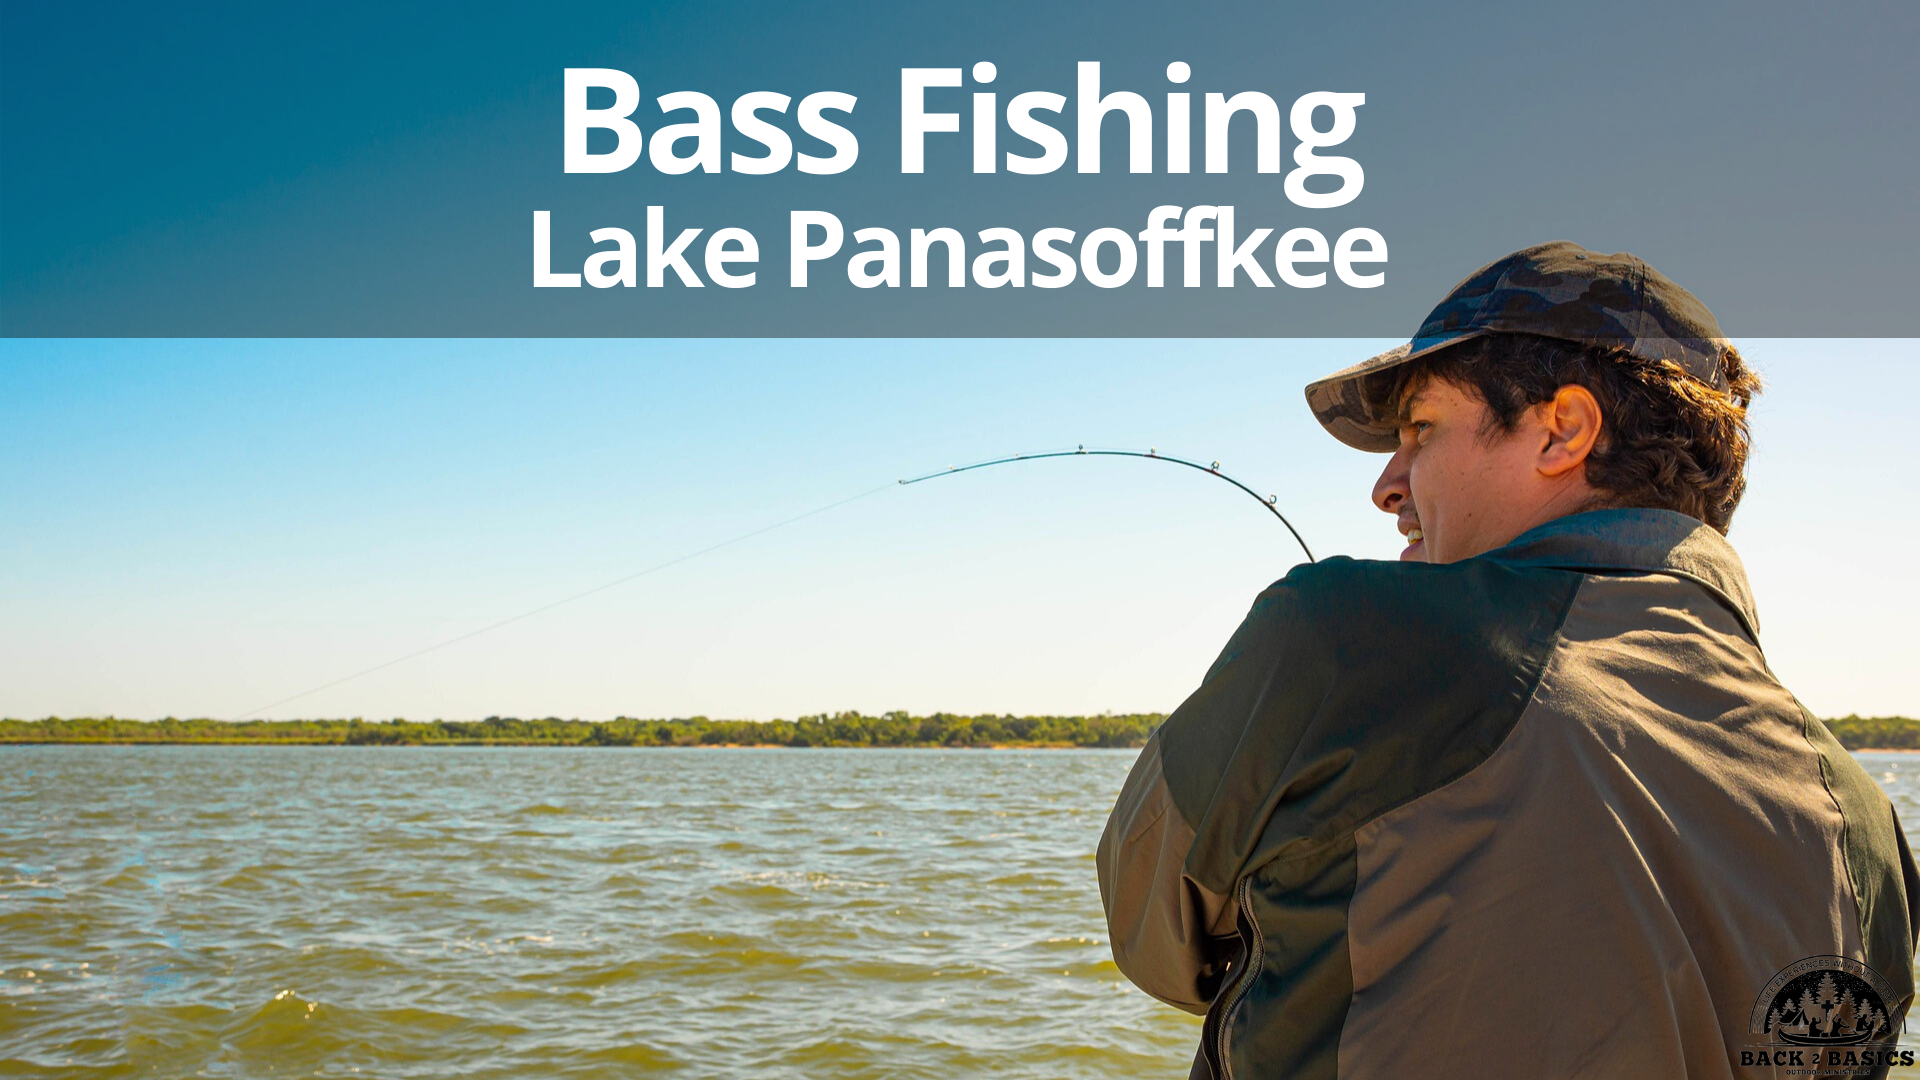 lake panasoffkee bass fishing adventure, back2basics outdoor ministries